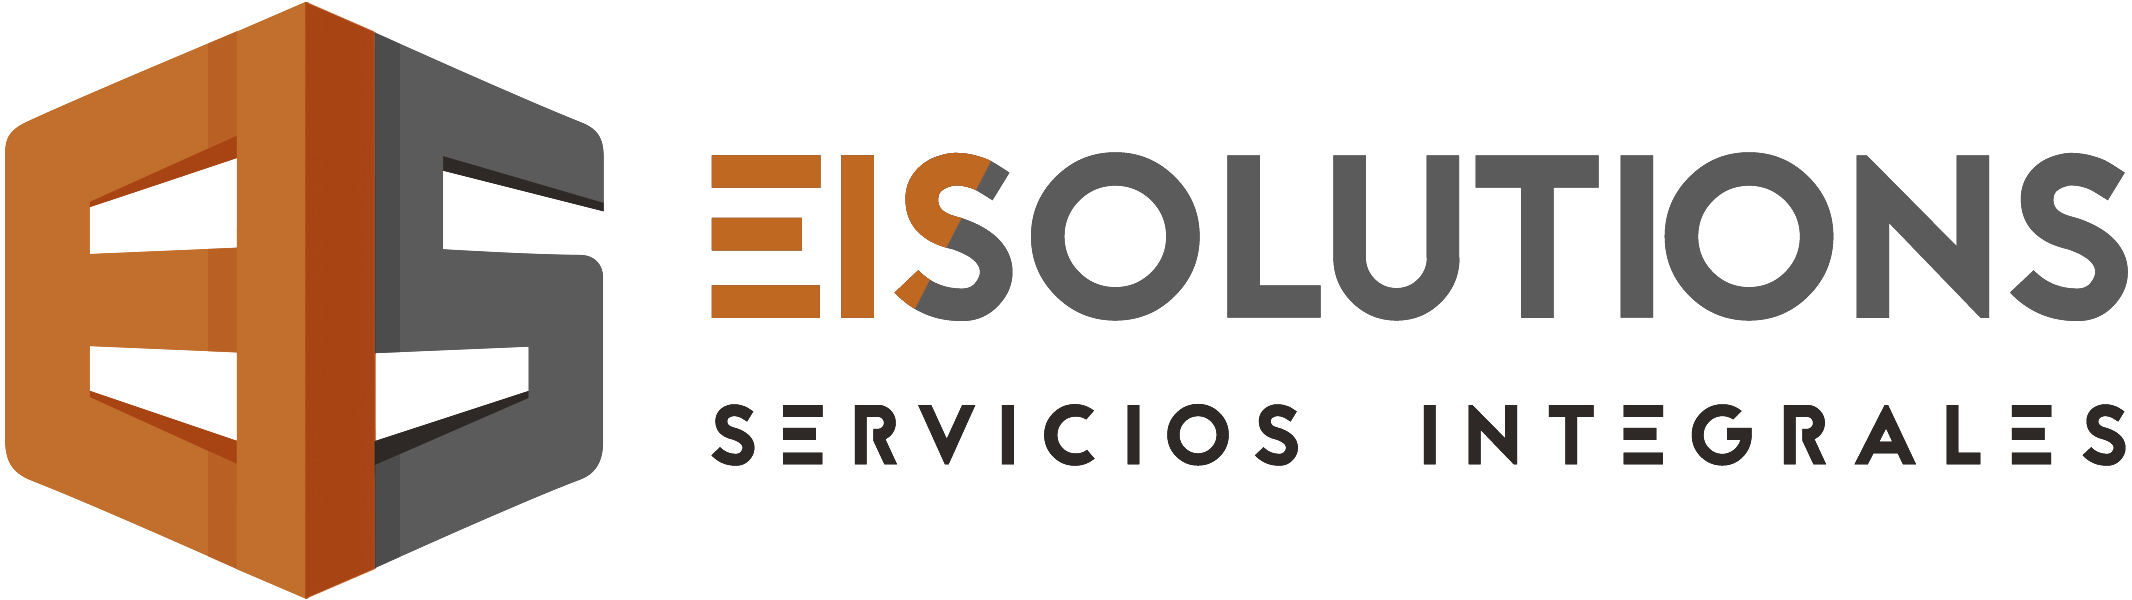 Eisolutions. Soluciones Integrales.